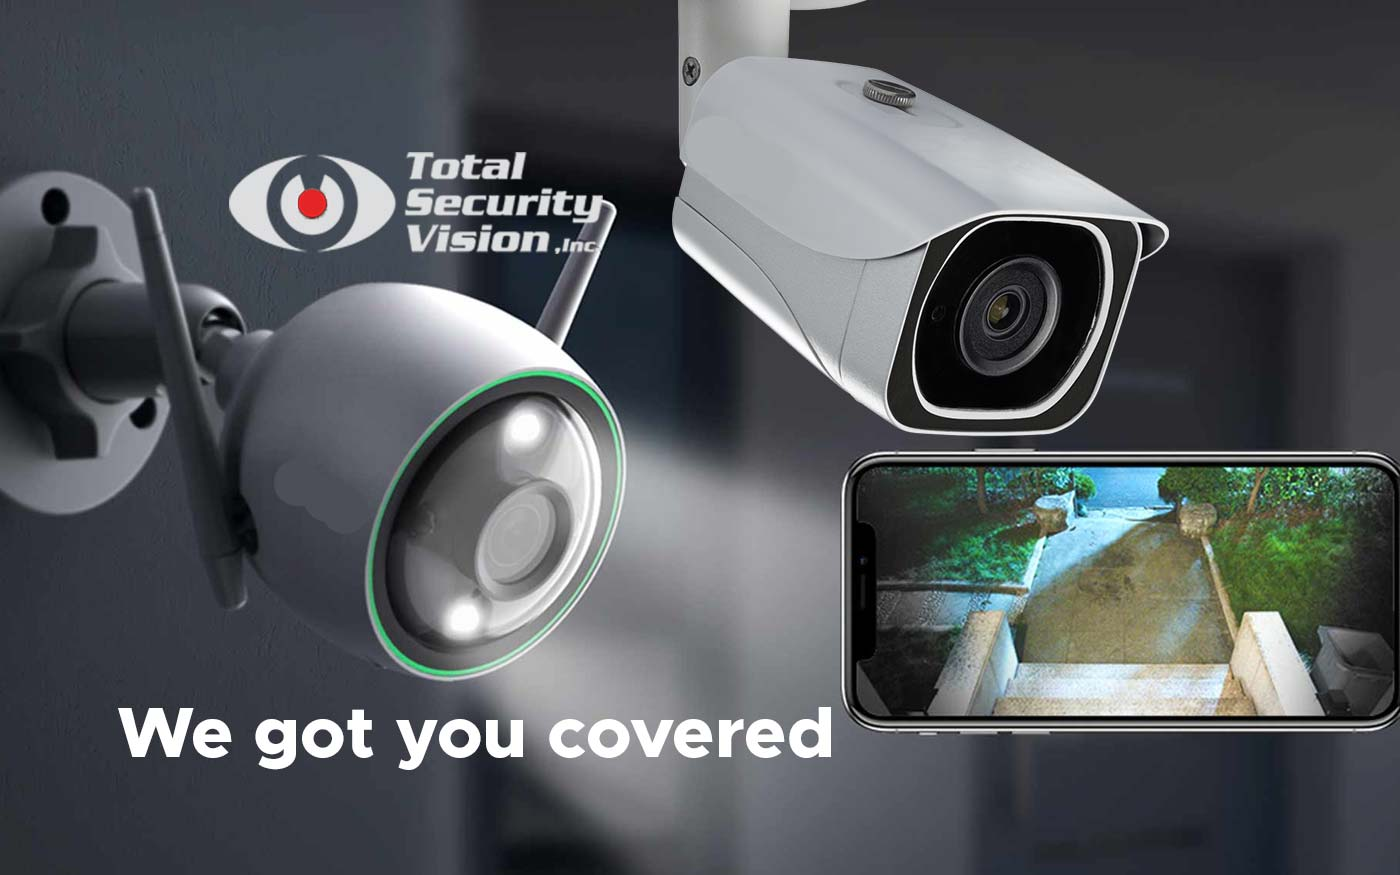 CCTV/Video Surveillance Systems in Orlando Florida imgNo-1